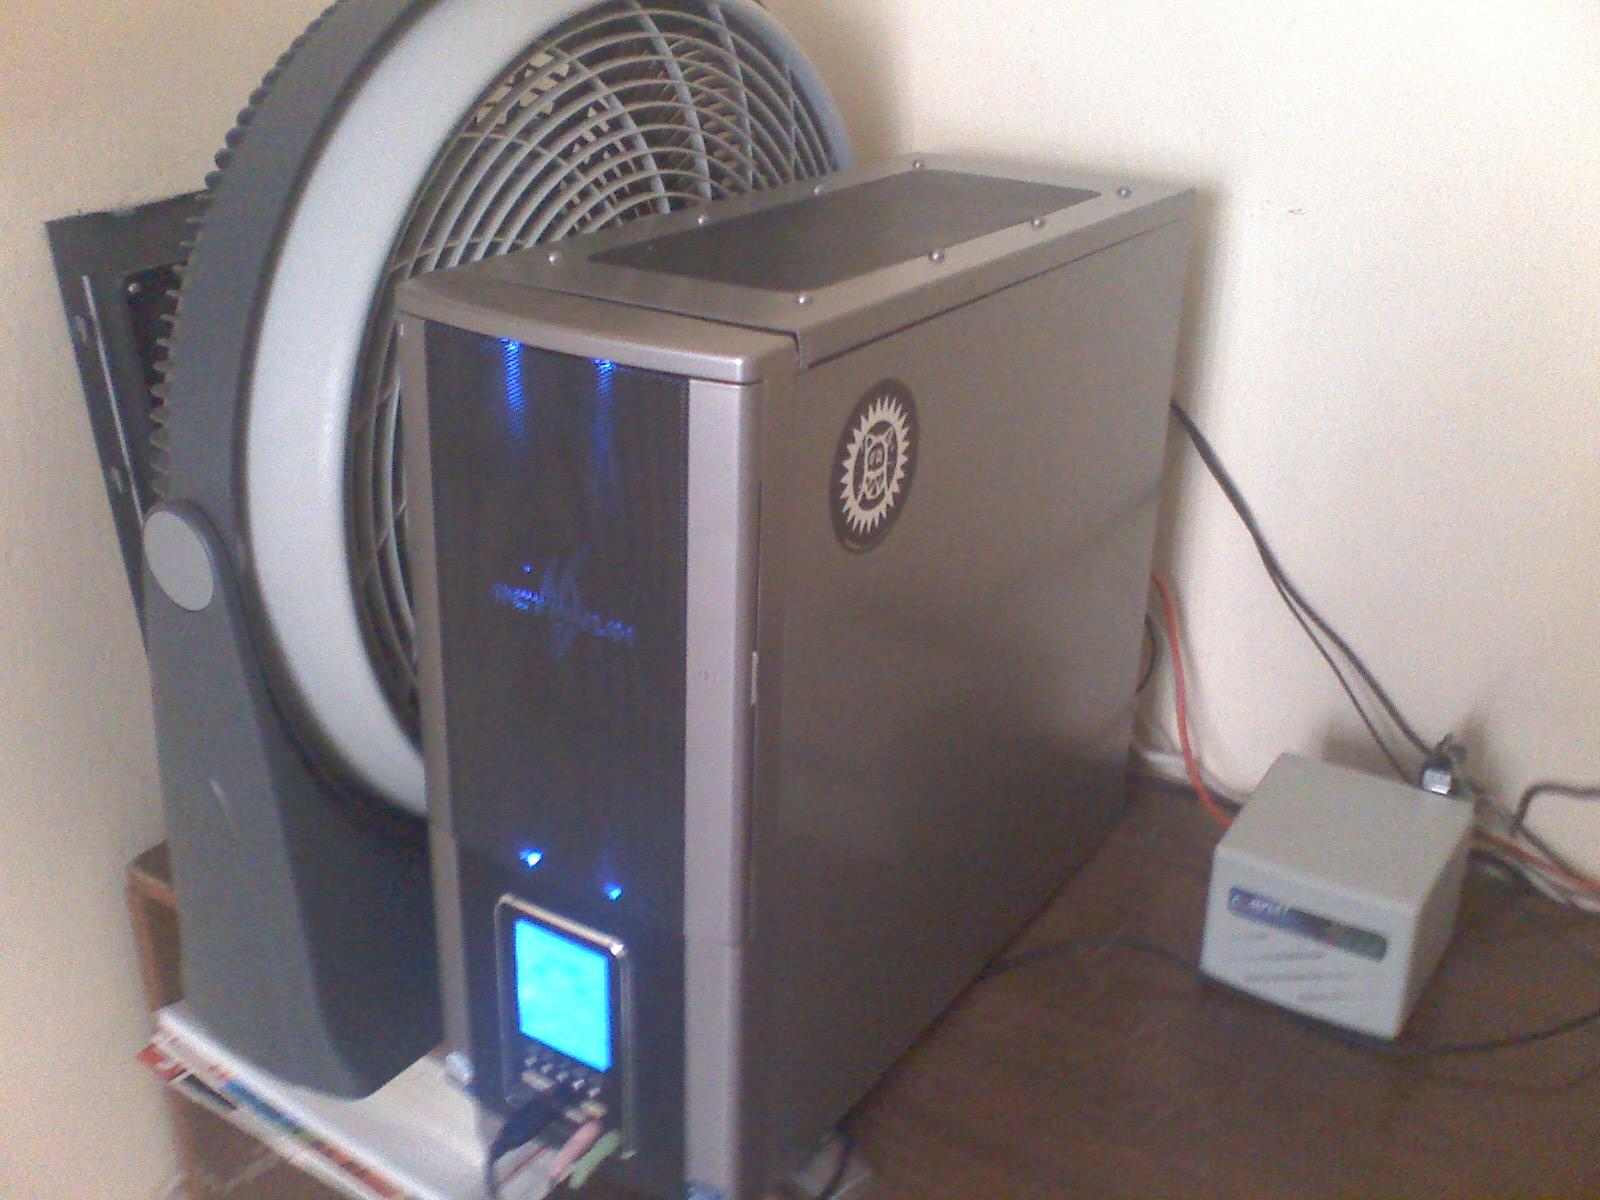 yes, the big thing next to it...